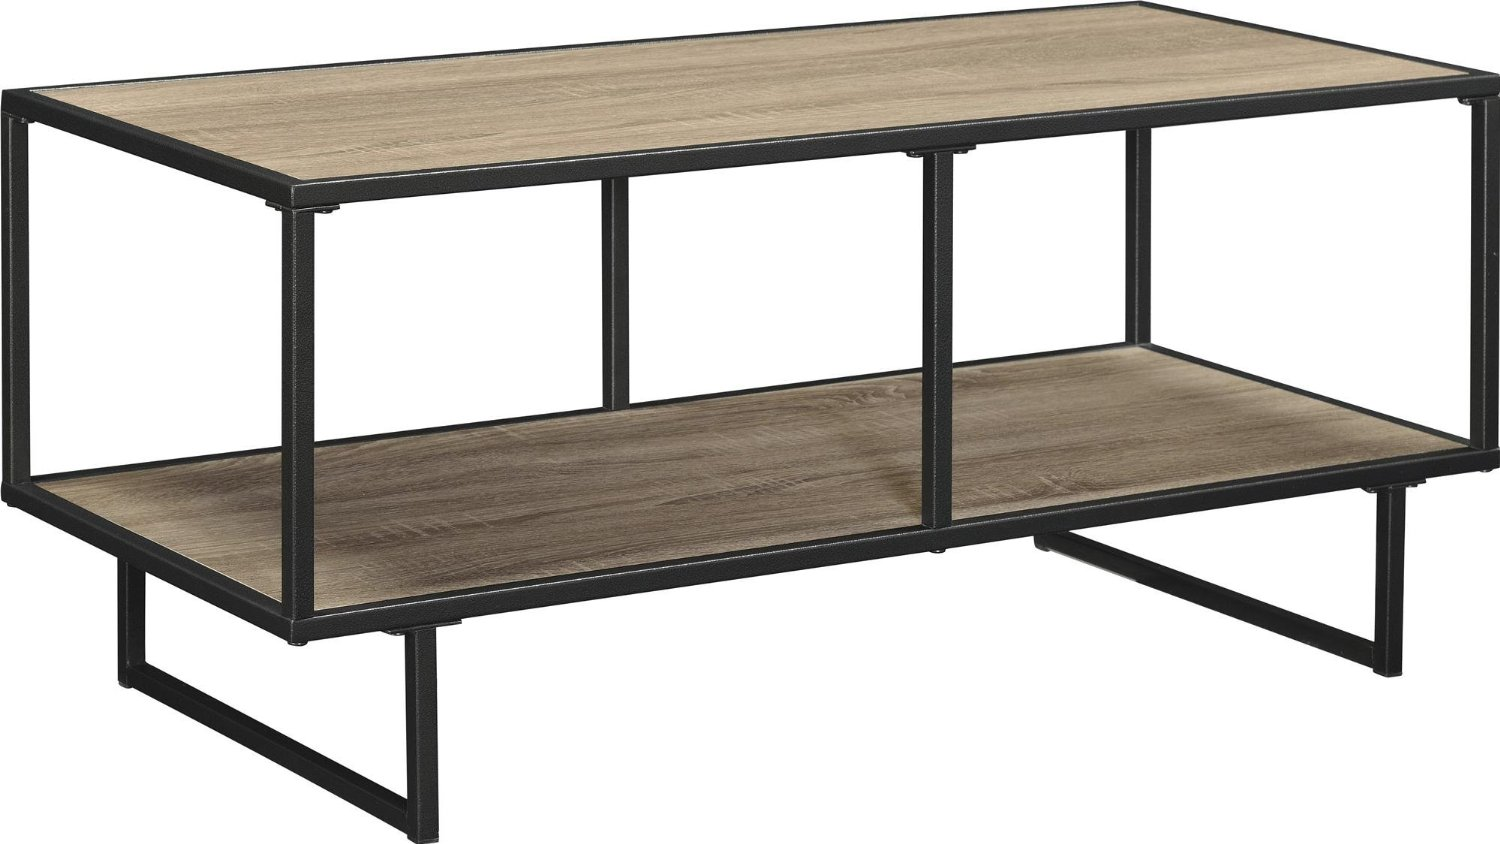 Cheap coffee tables under 100 that work for every style for Cheap oak coffee table